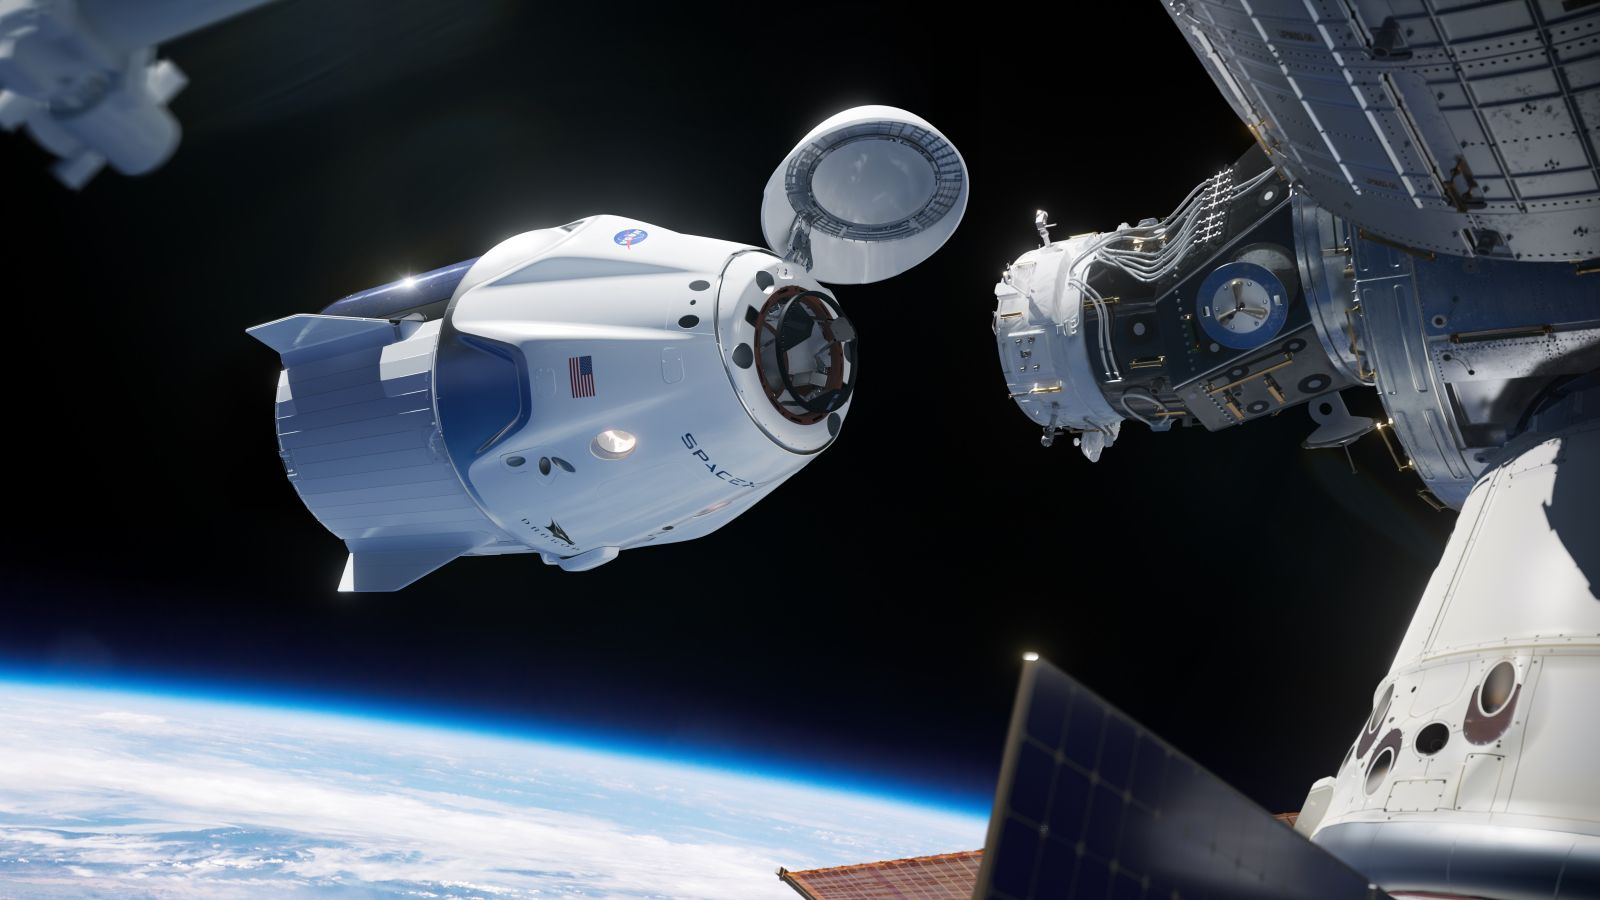 SpaceX has applied for an FCC license that suggests the first, unmanned flight of SpaceX's crew-rated Dragon spacecraft will not launch until March. Image Credit: NASA